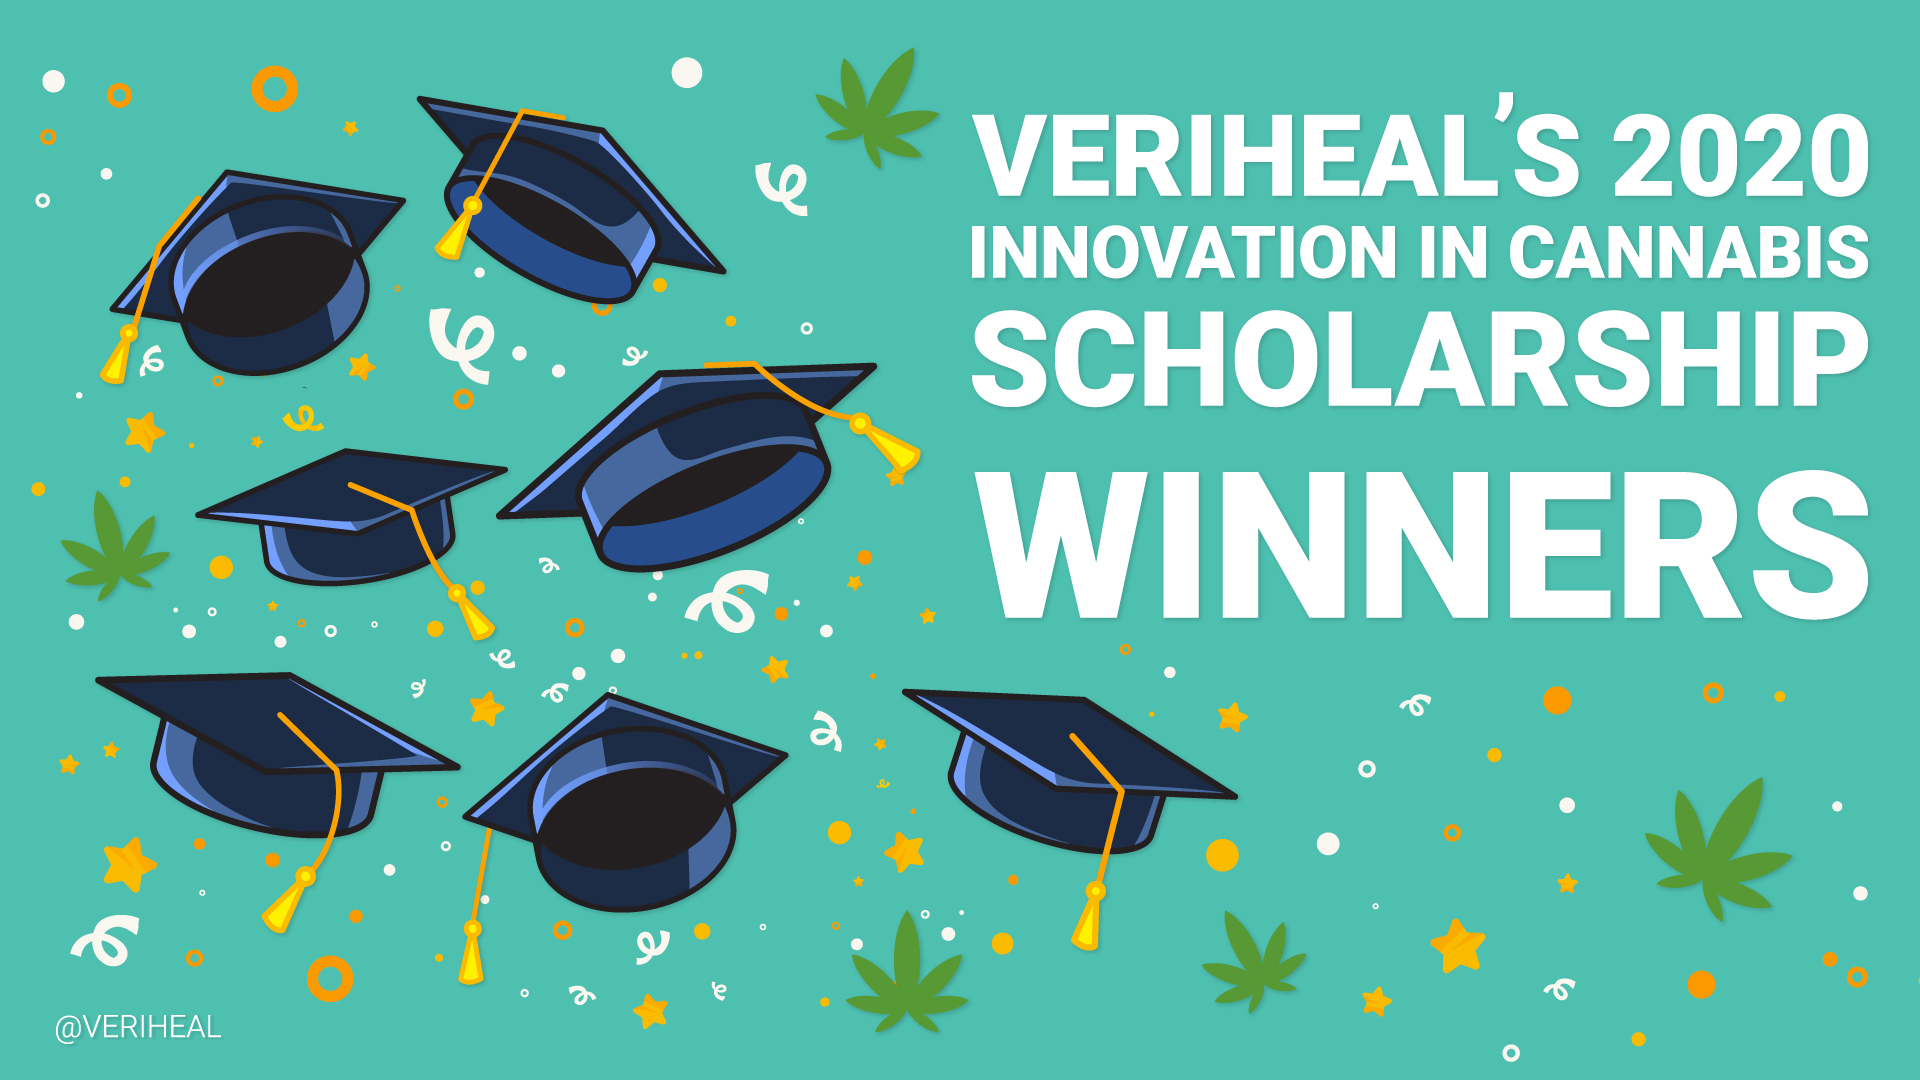 Veriheal's Innovation in Cannabis Scholarship 2020 Winners